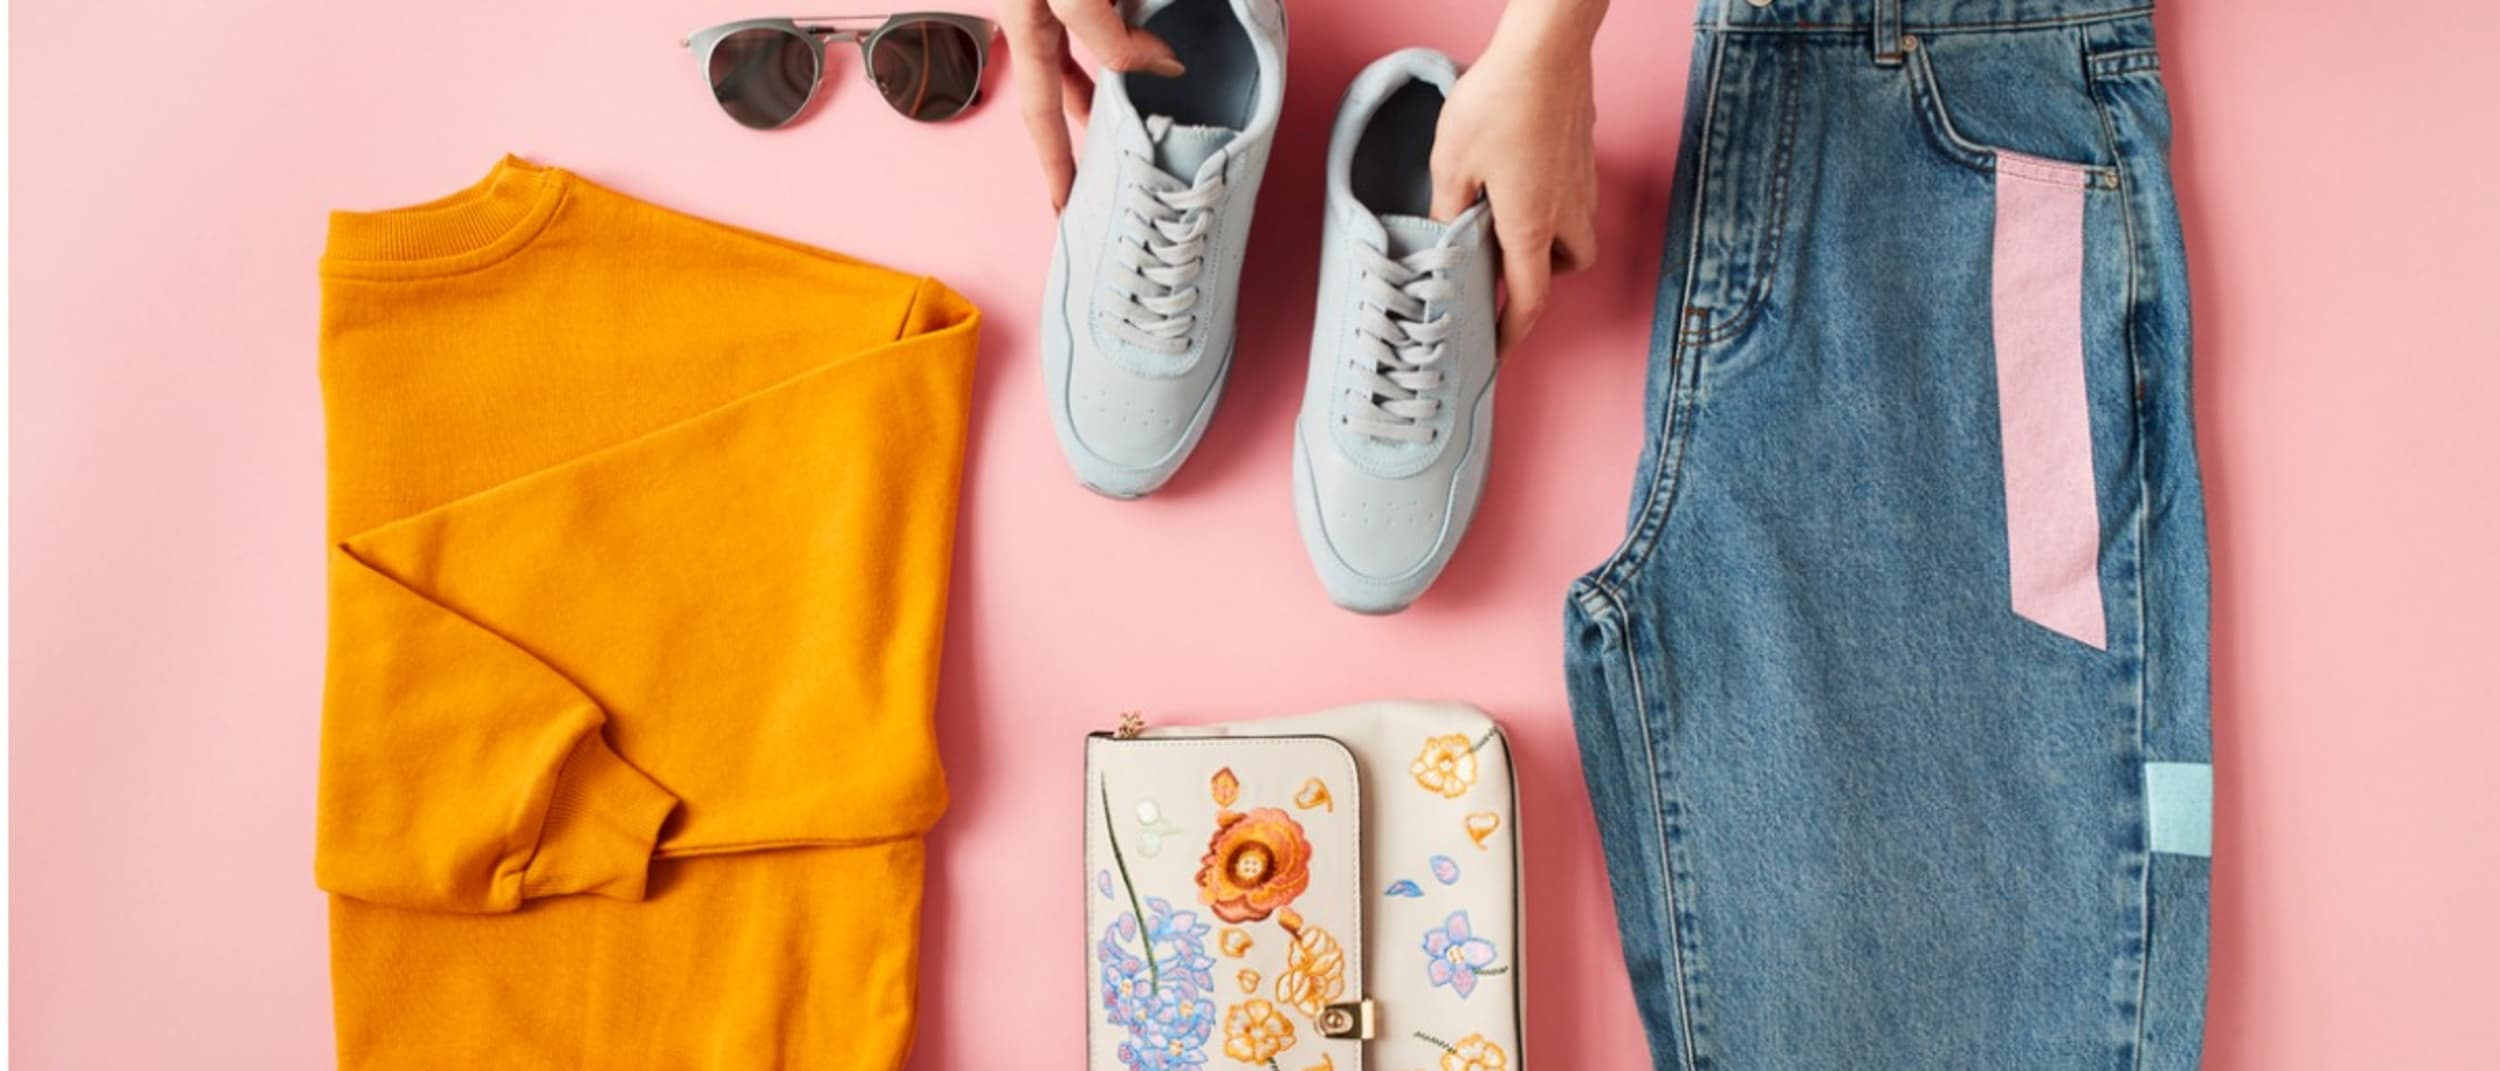 What is a personal styling session?